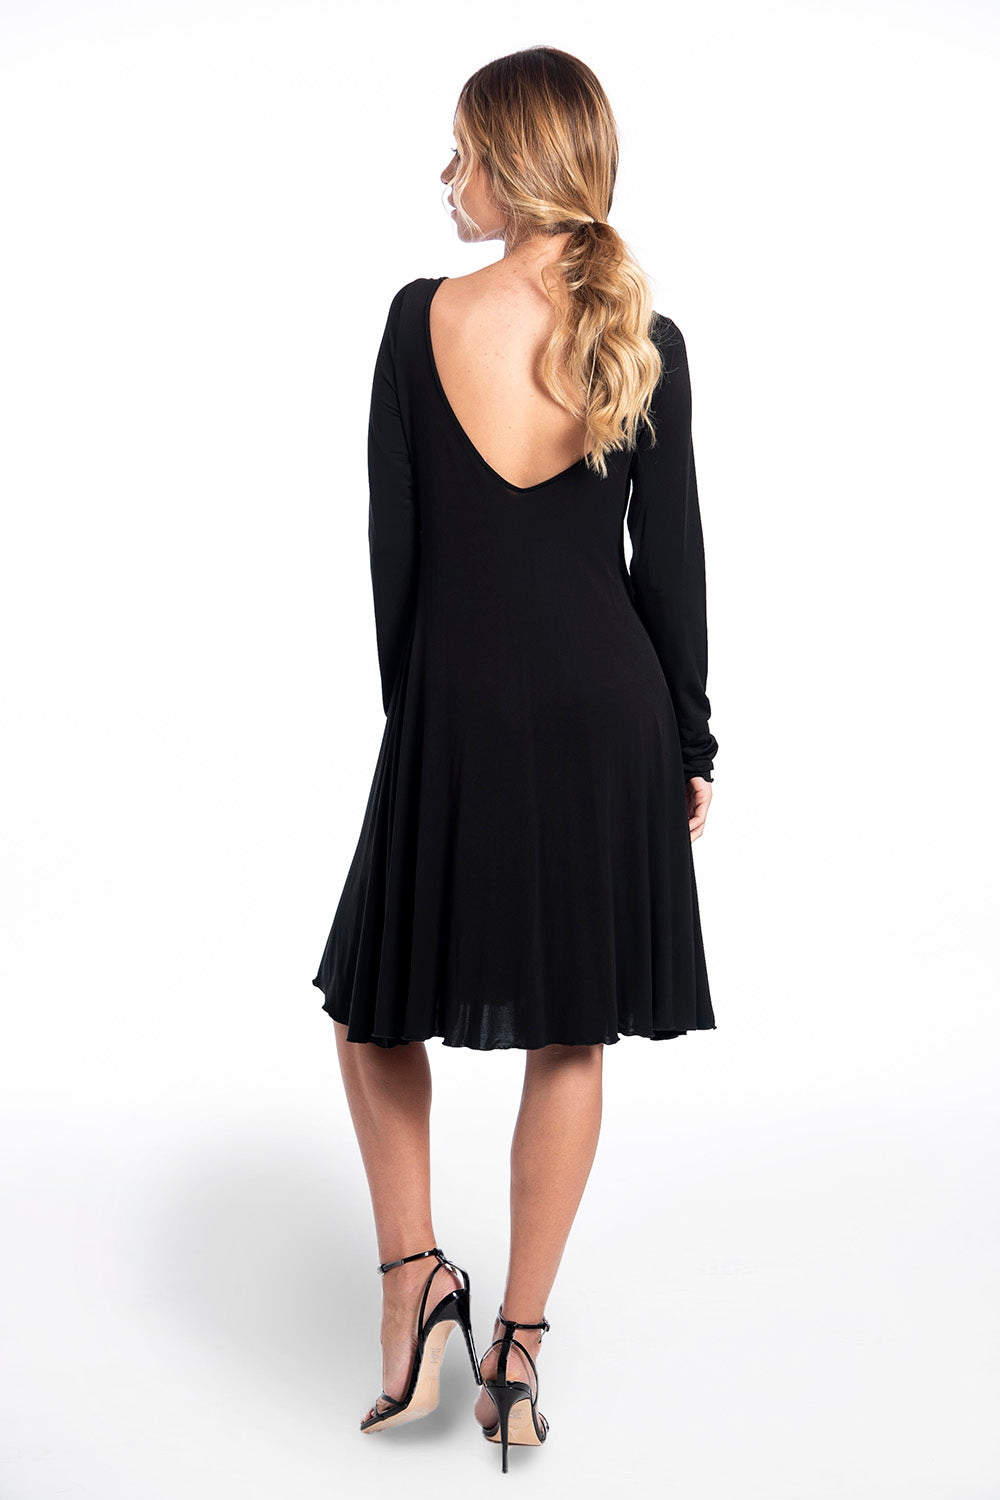 Stretch black skater dress with buckle detail